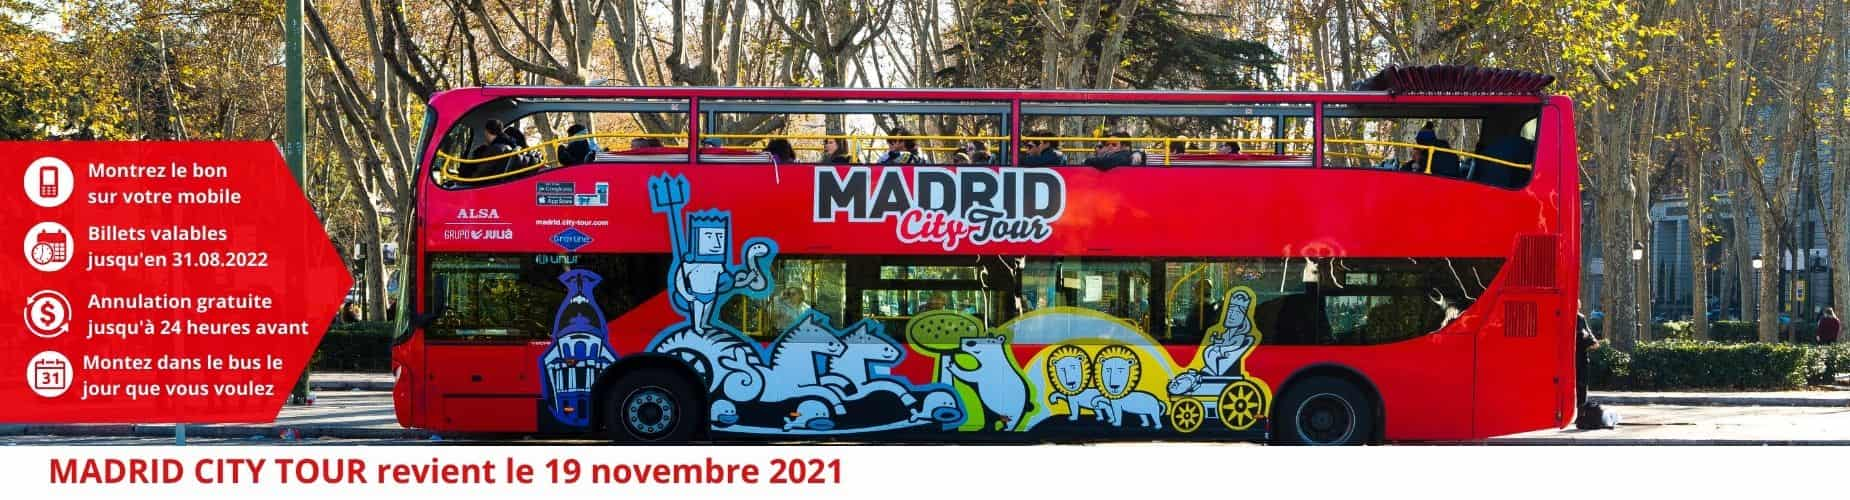 anullation gratuite Madrid City Tour